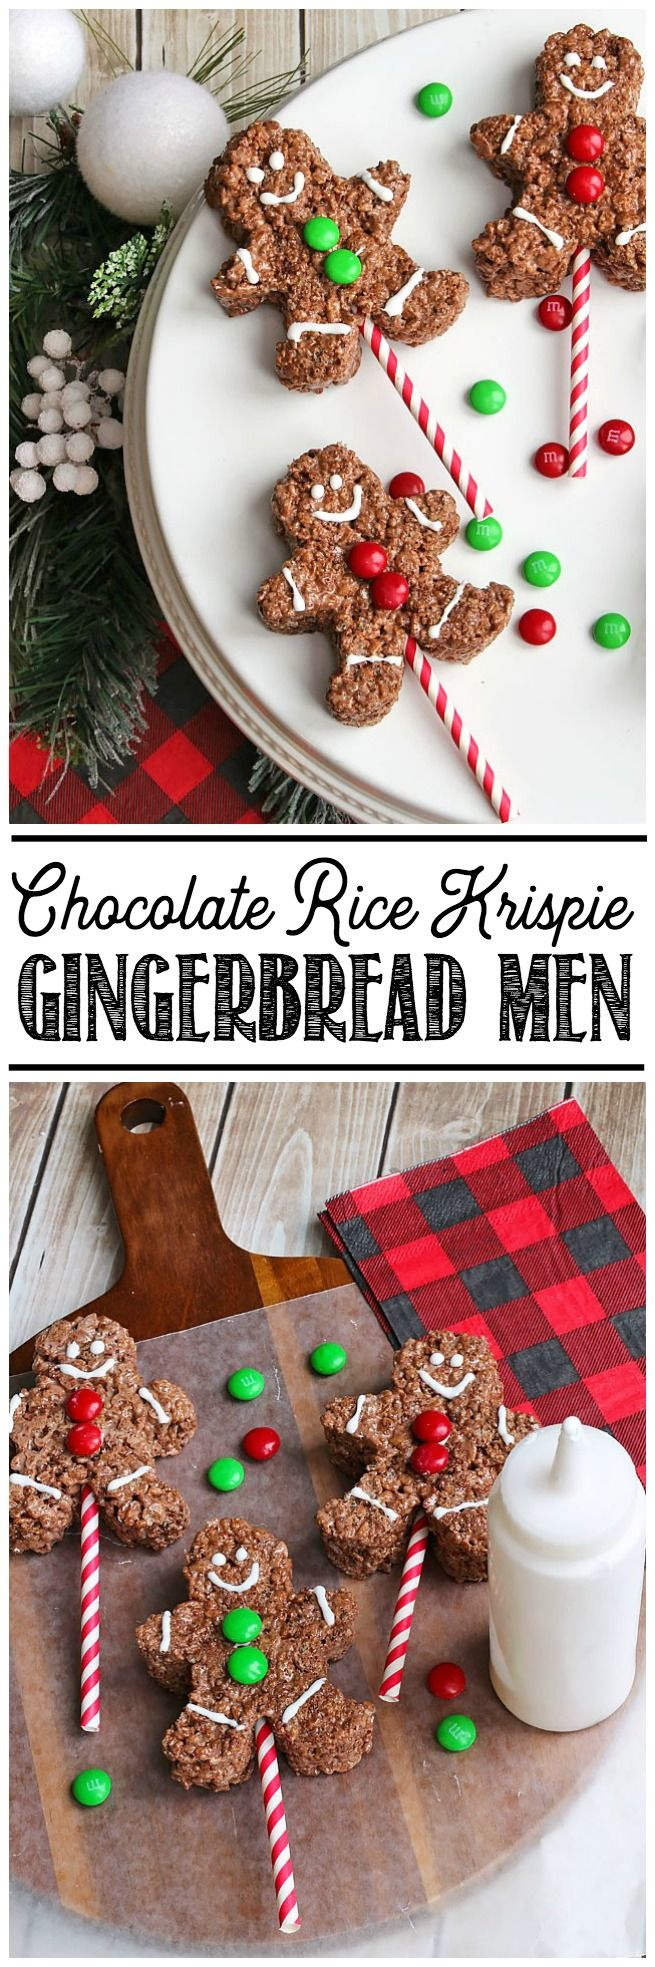 Adorable chocolate Rice Krispie gingerbread men. These would be the hit at any Christmas party! xx